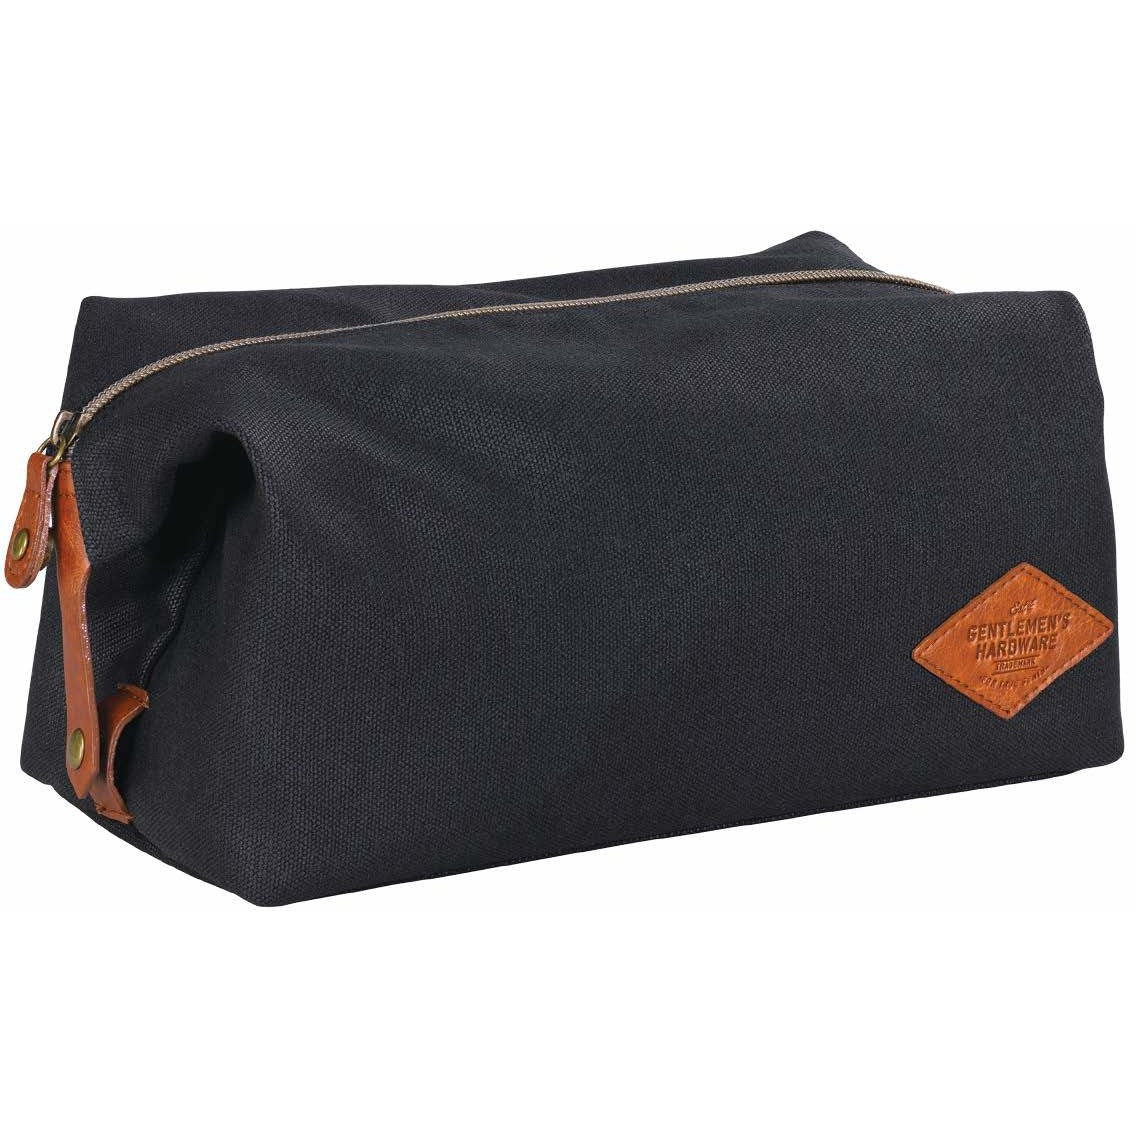 72bc37f1d4 Gentleman s Hardware Men s Waxed Canvas Wash Bag